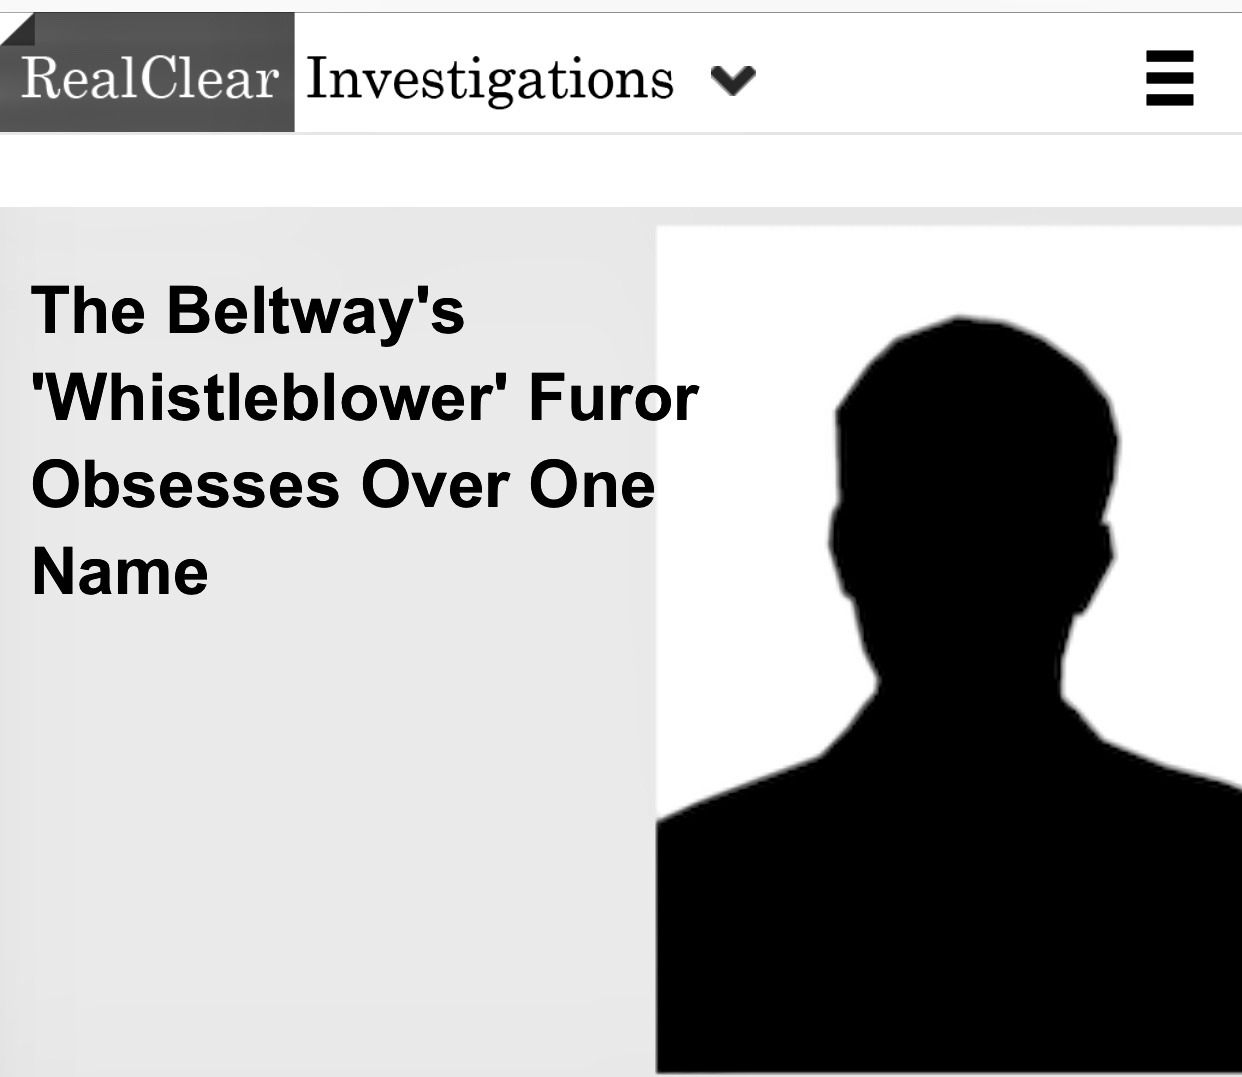 The Beltway's 'Whistleblower' Furor Obsesses Over One Name